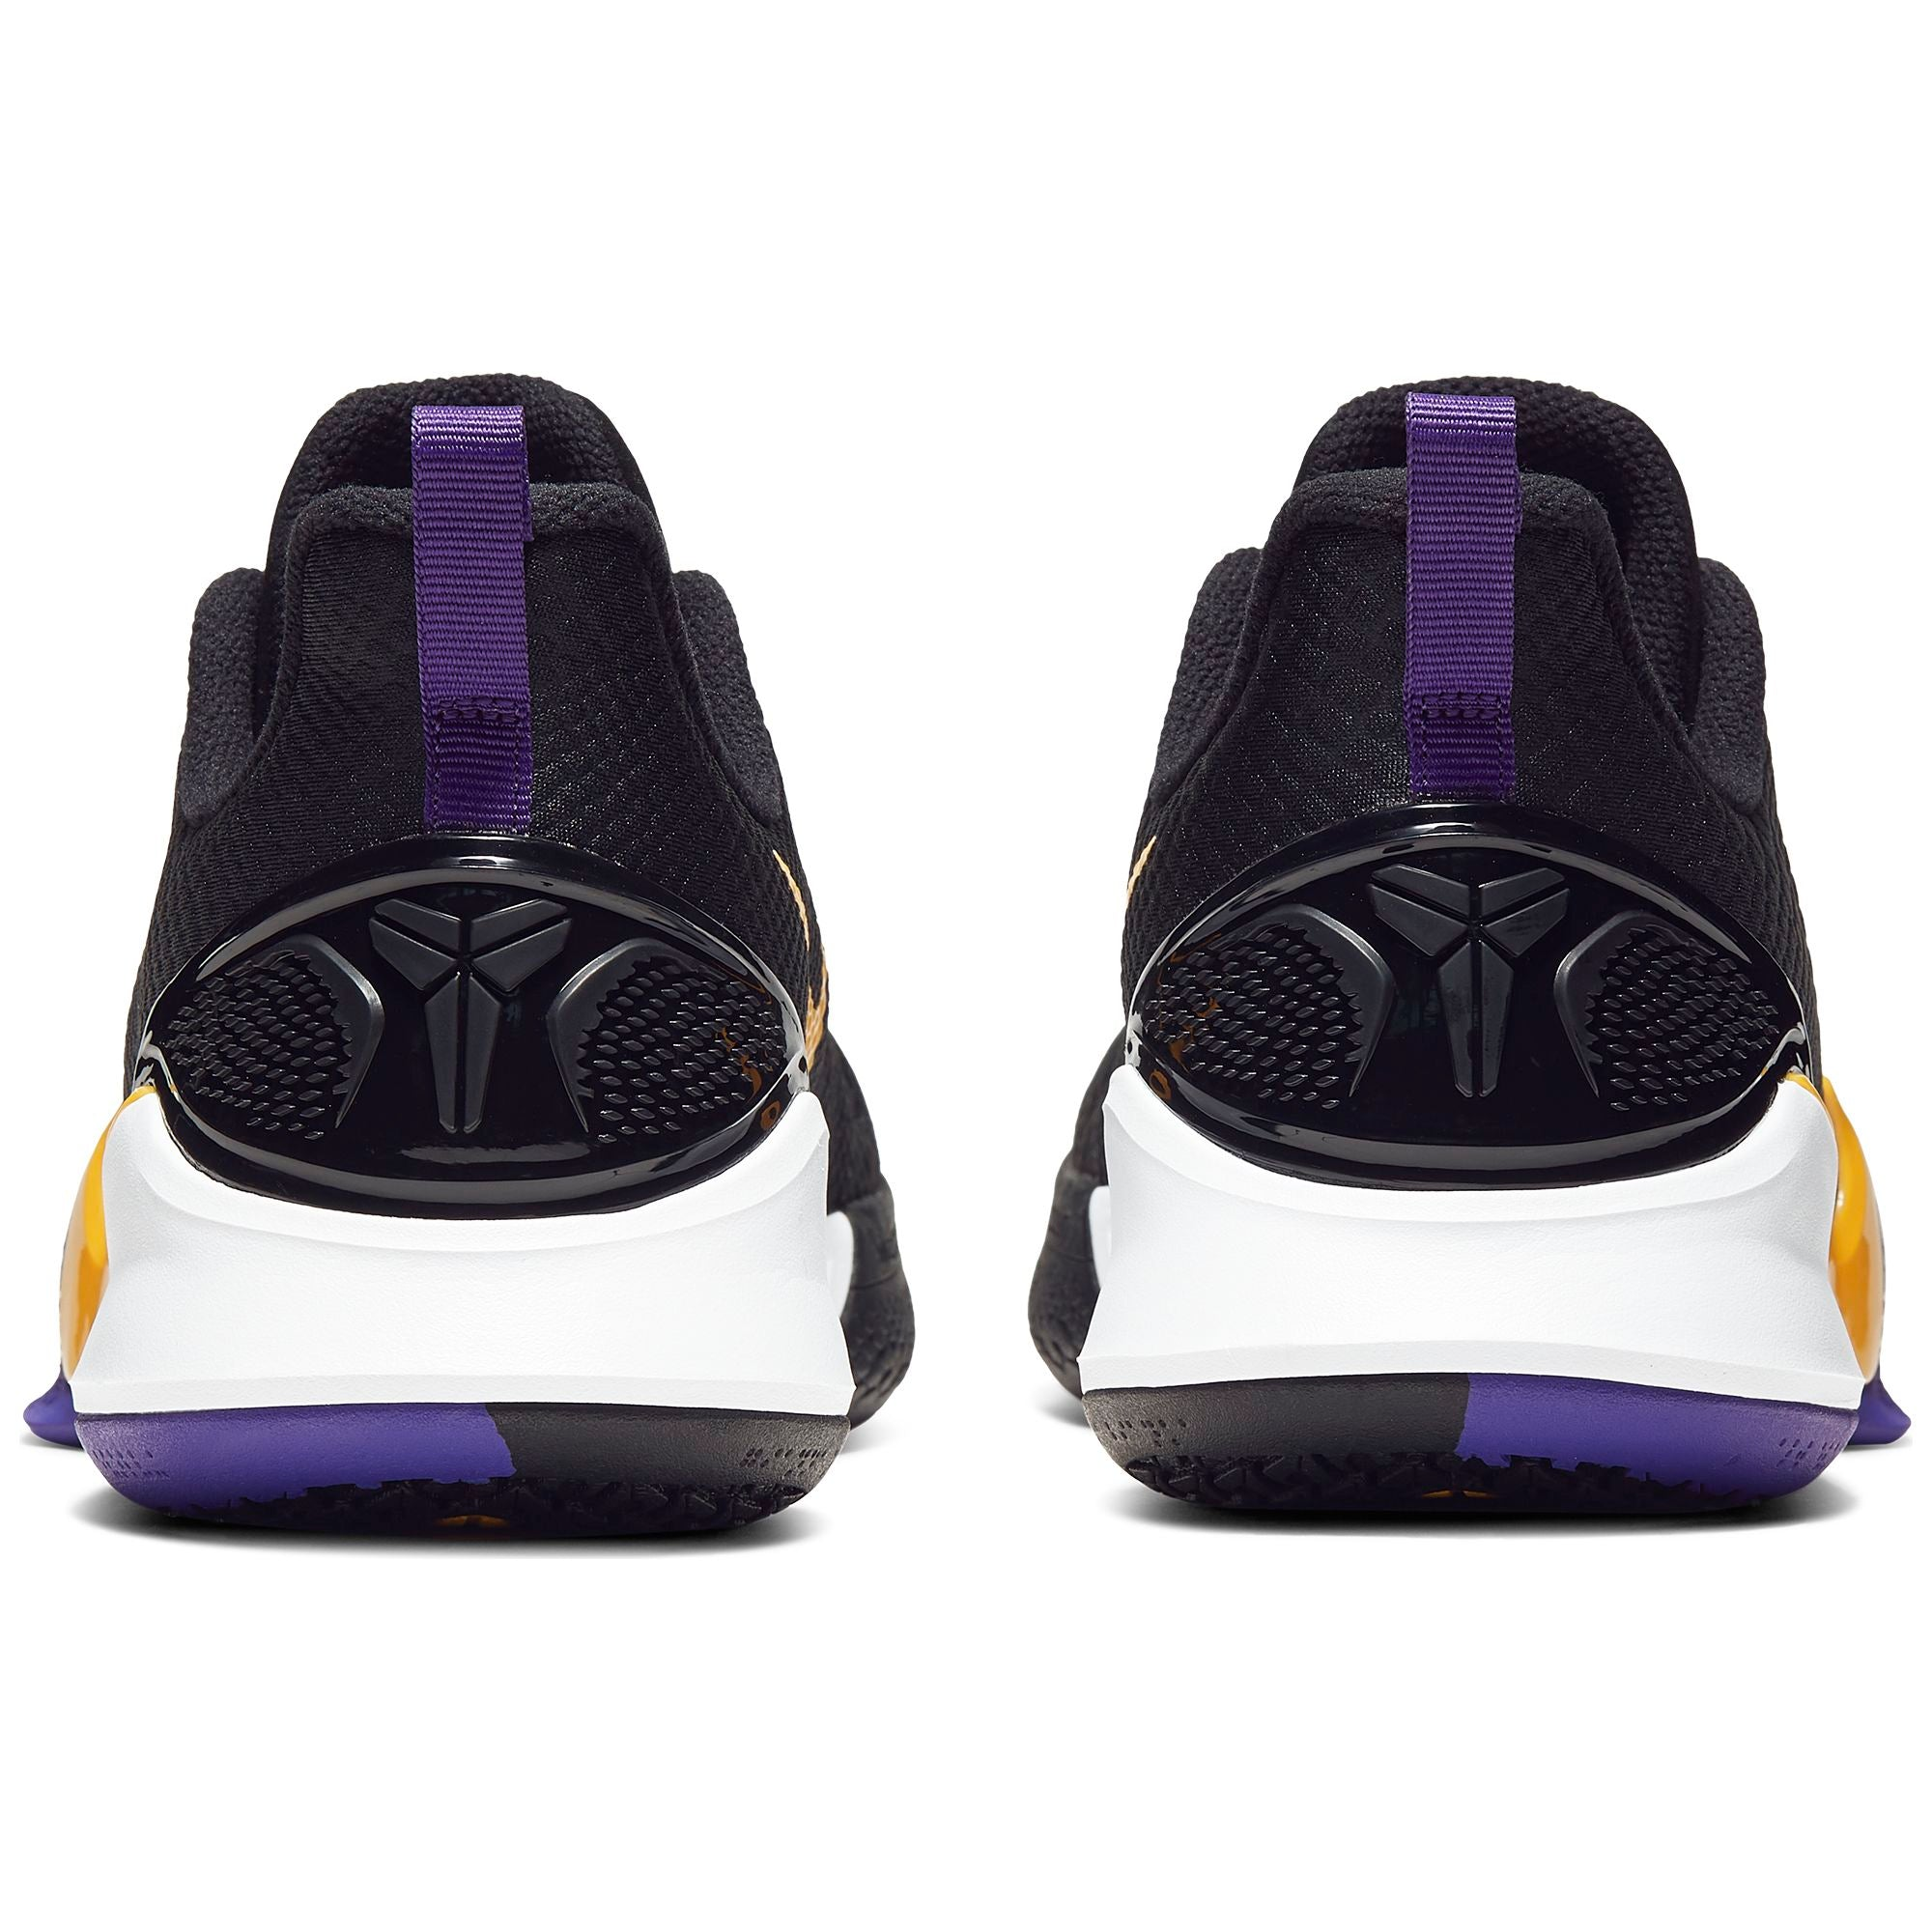 Nike Kobe Mamba Focus Low Basketball Shoe - Black/Amarillo/Field Purple/White